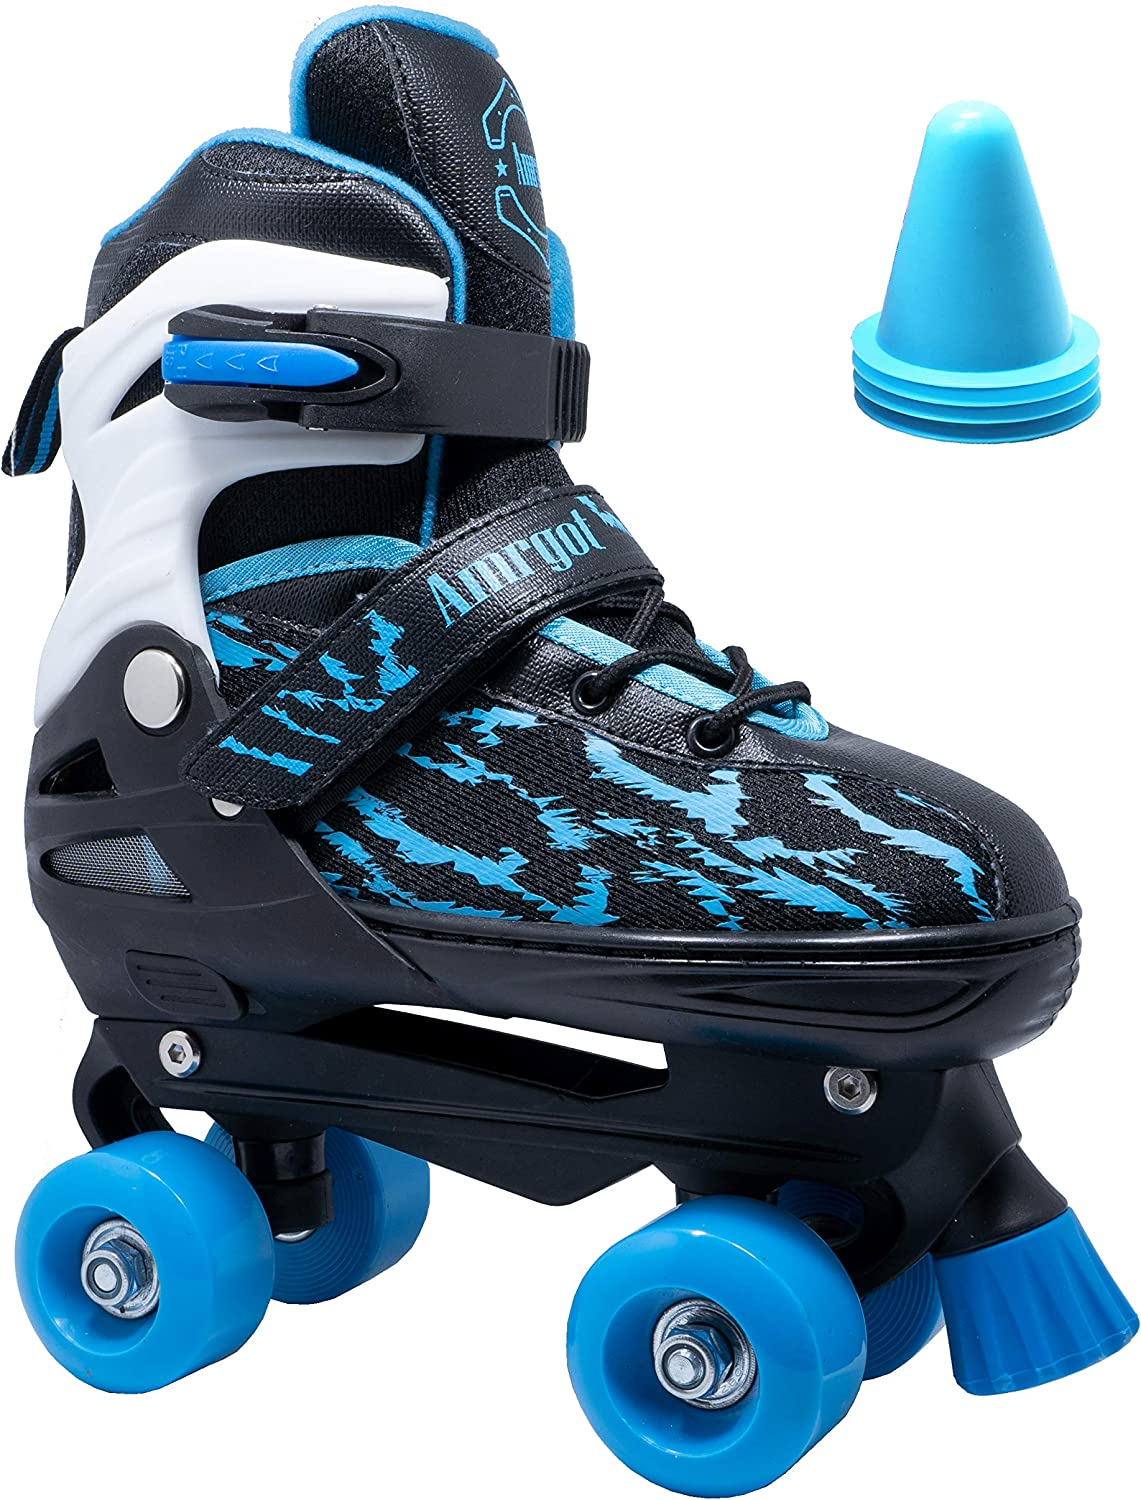 WiiSHAM Fun Roll Adjustable Roller Skates with Four Piles